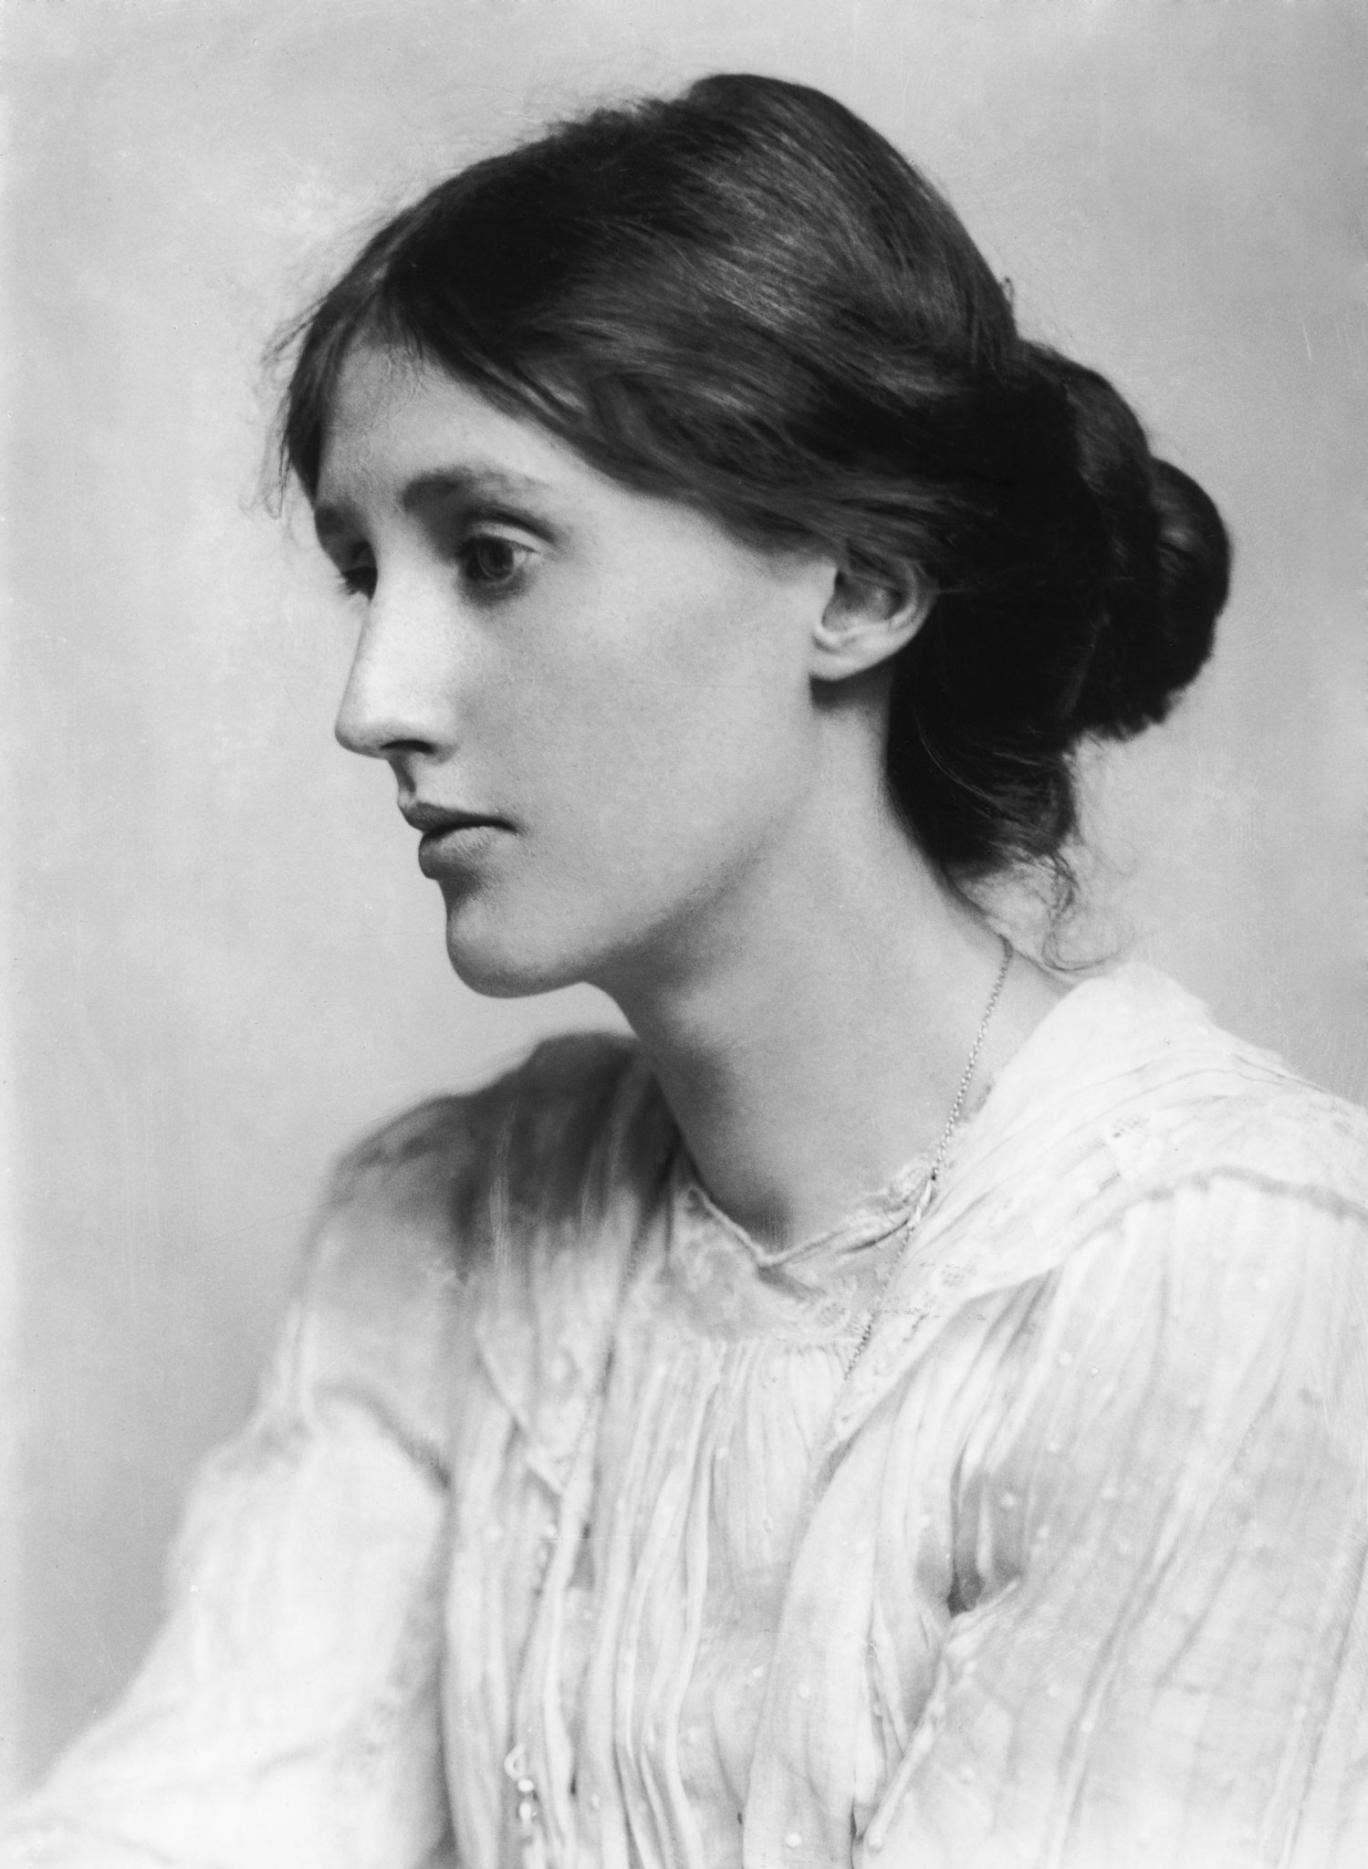 Virginia Woolf in 1902. She penned nine novels including Mrs Dalloway and the feminist tract A Room of One's Own, as well as biographies and criticism